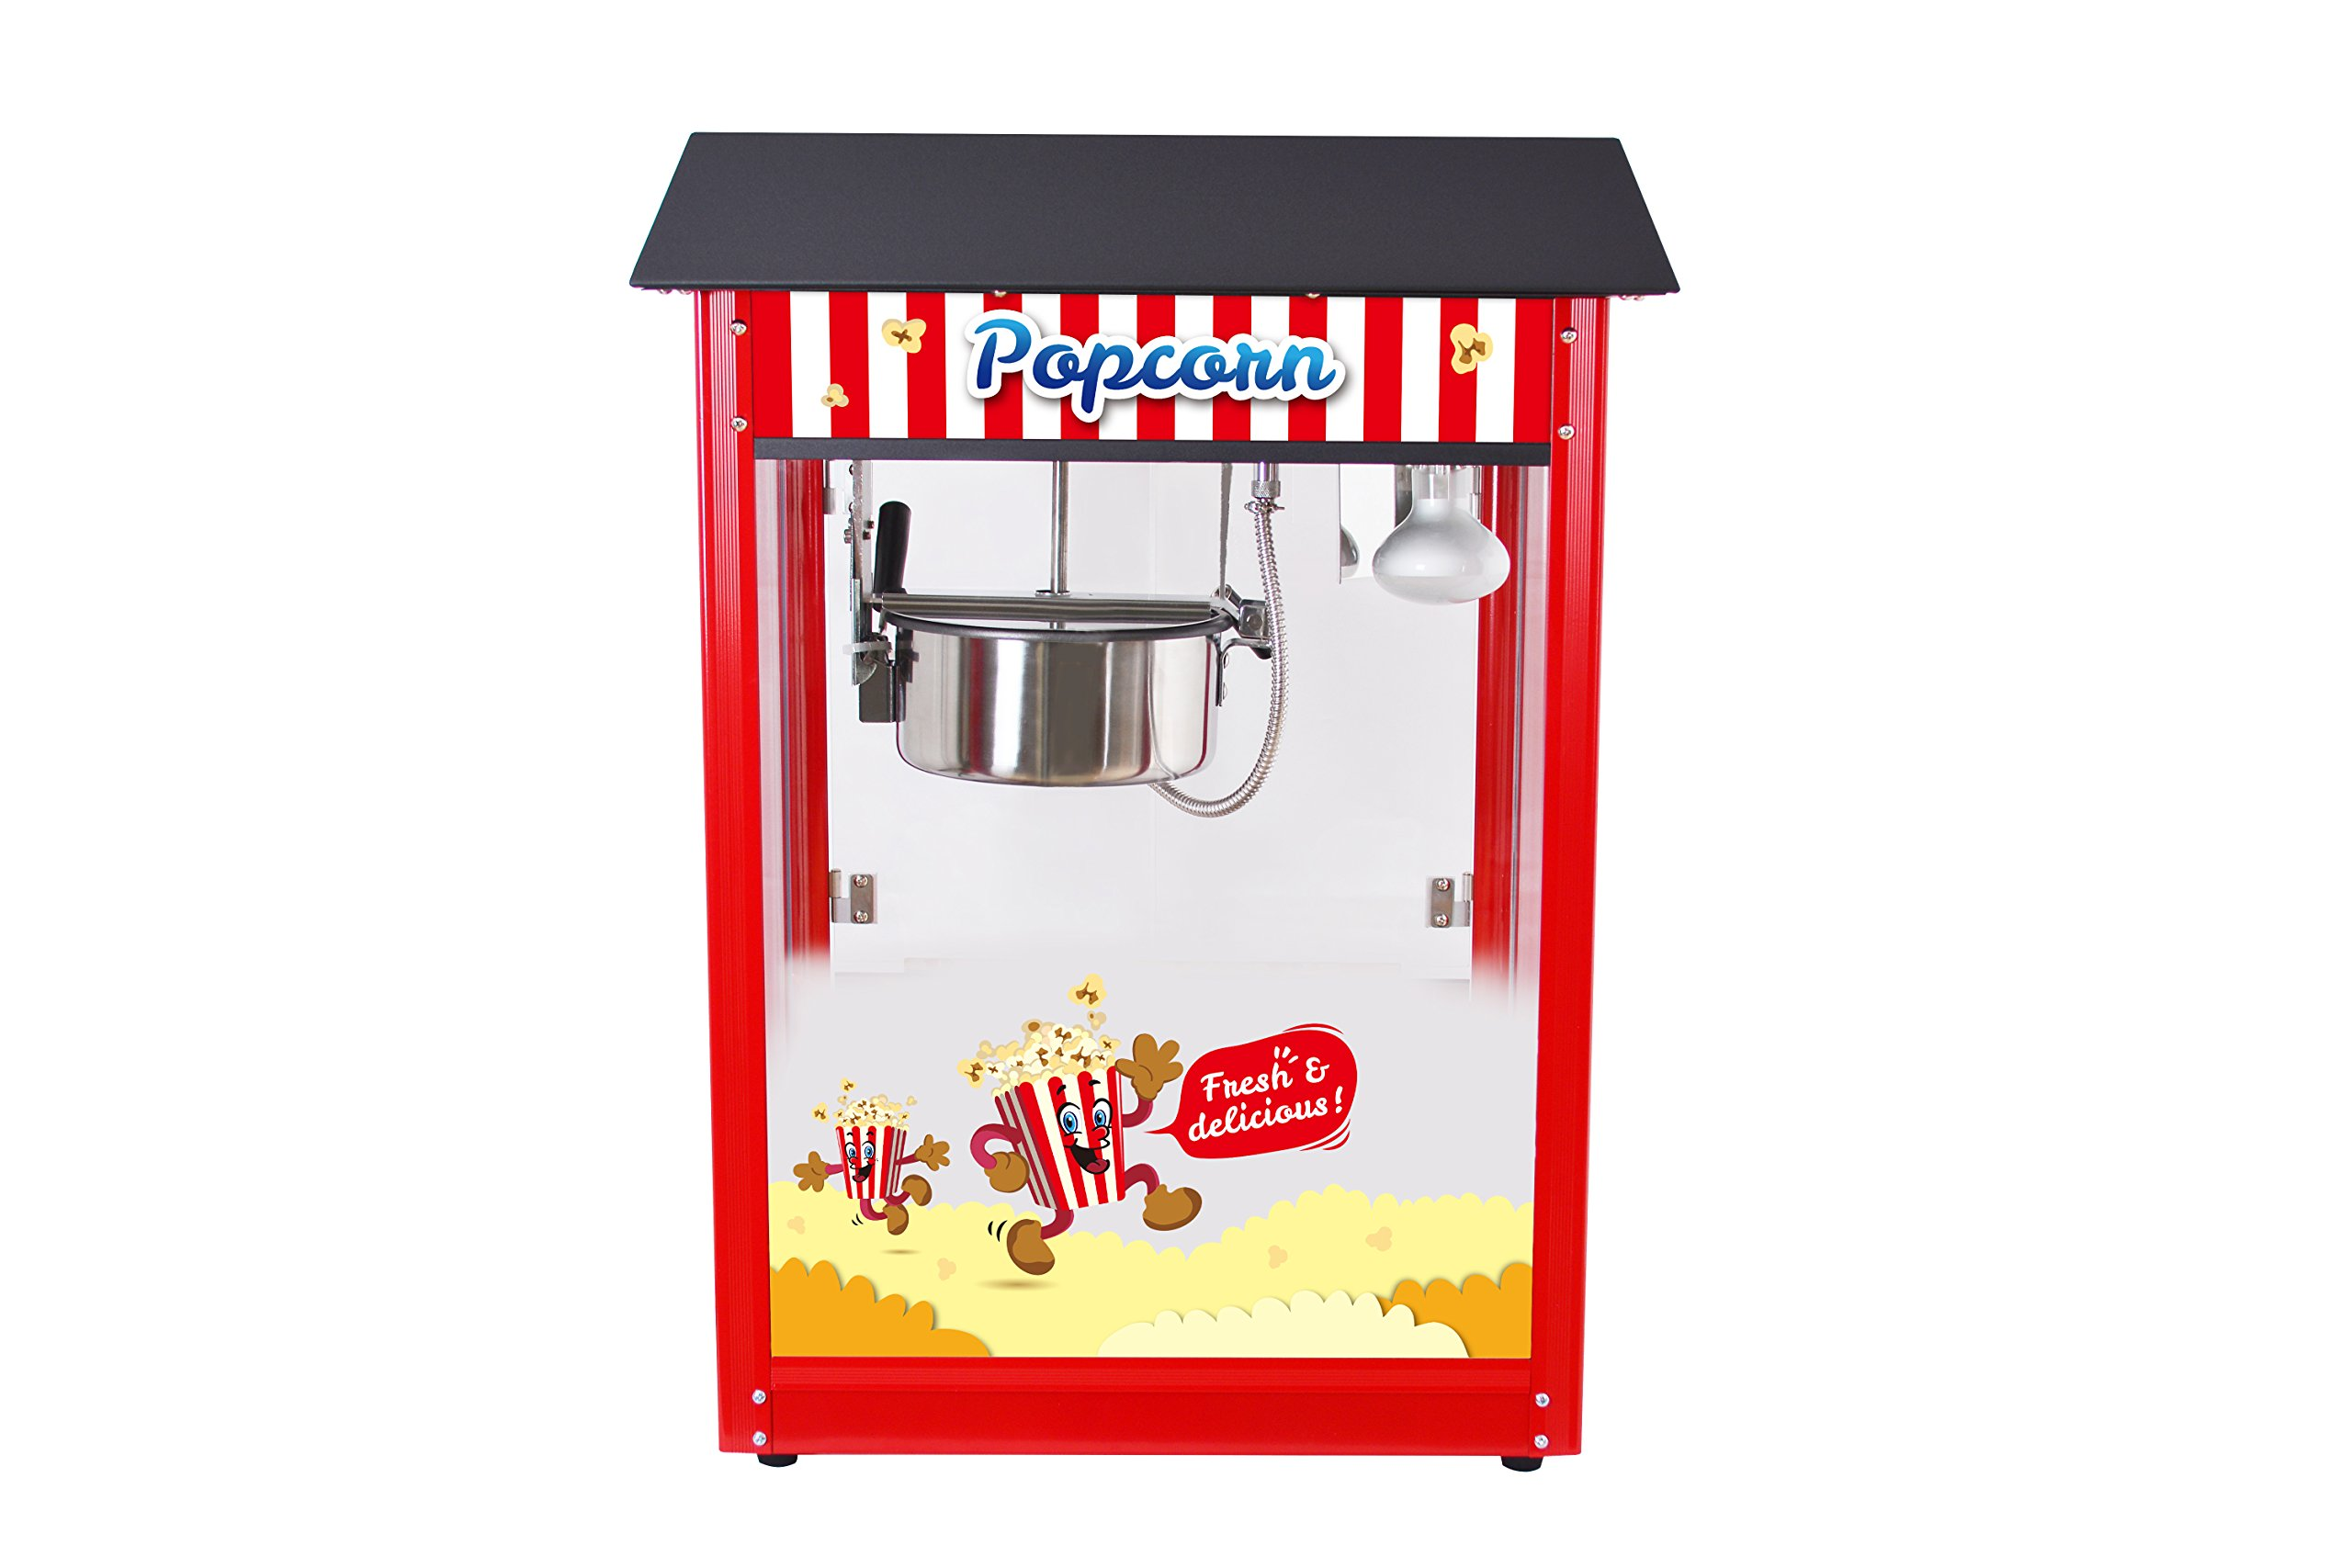 Movie Theater Style 8 oz. Ounce Popcorn Machine. Quick popcorn within 3 min (Black Top)